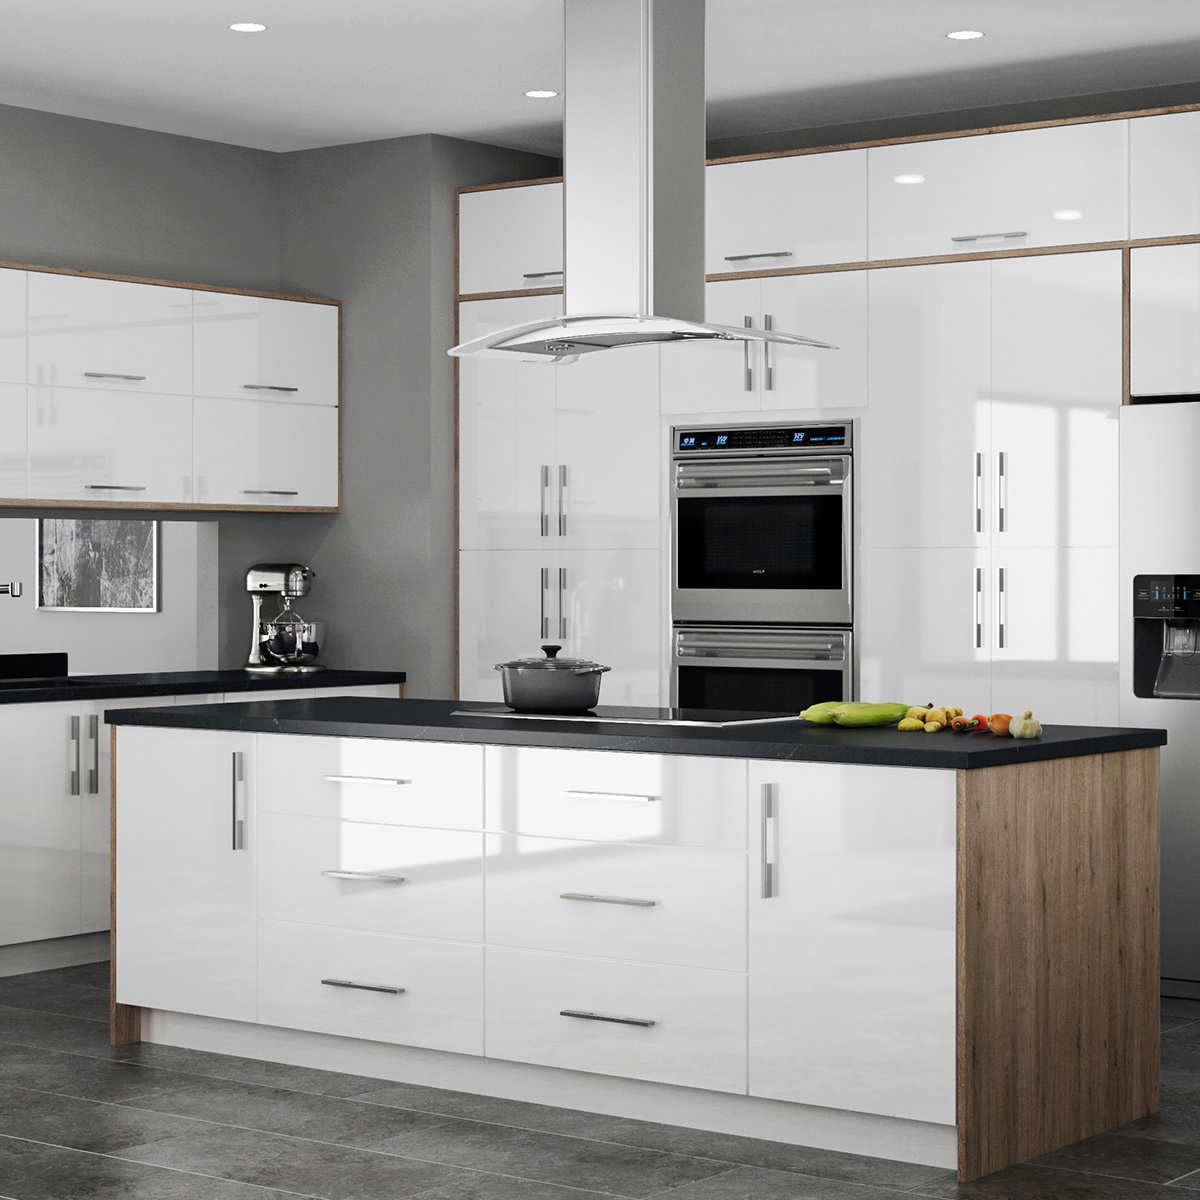 Metropolitan Kitchen and Bath Cabinets by All Wood Cabinetry